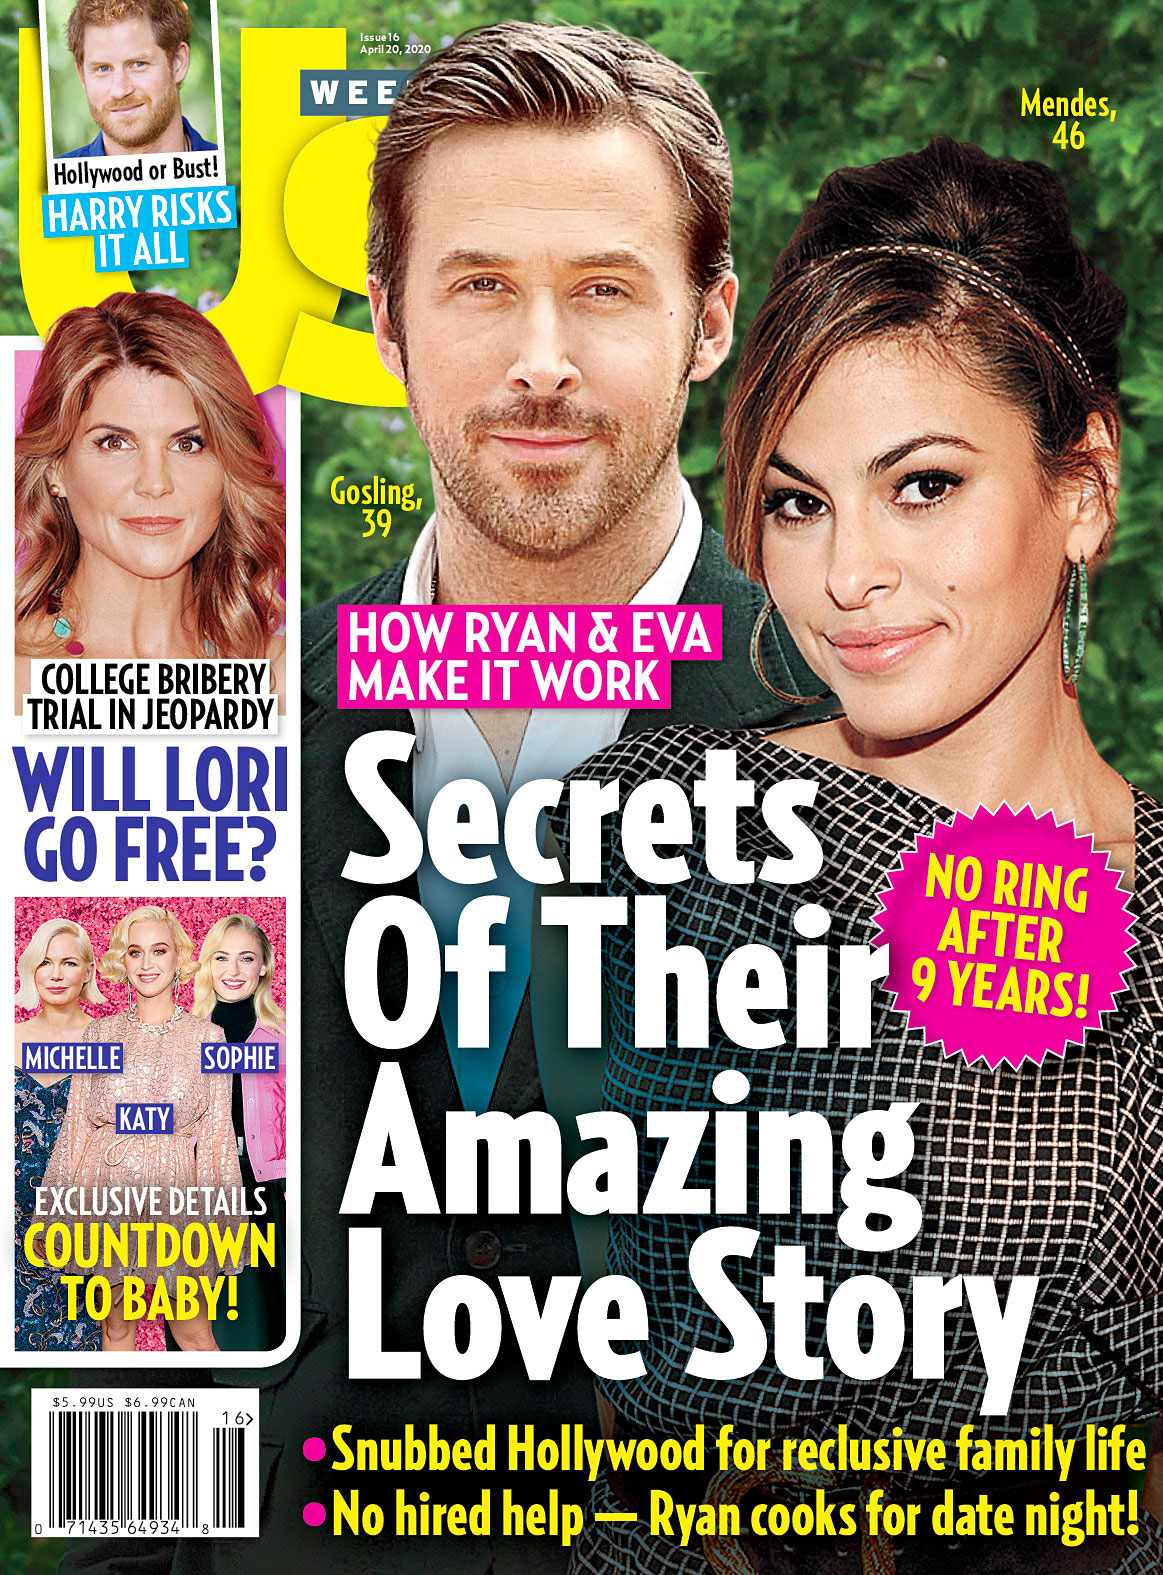 Us Weekly Cover Issue 1620 Ryan Gosling and Eva Mendes